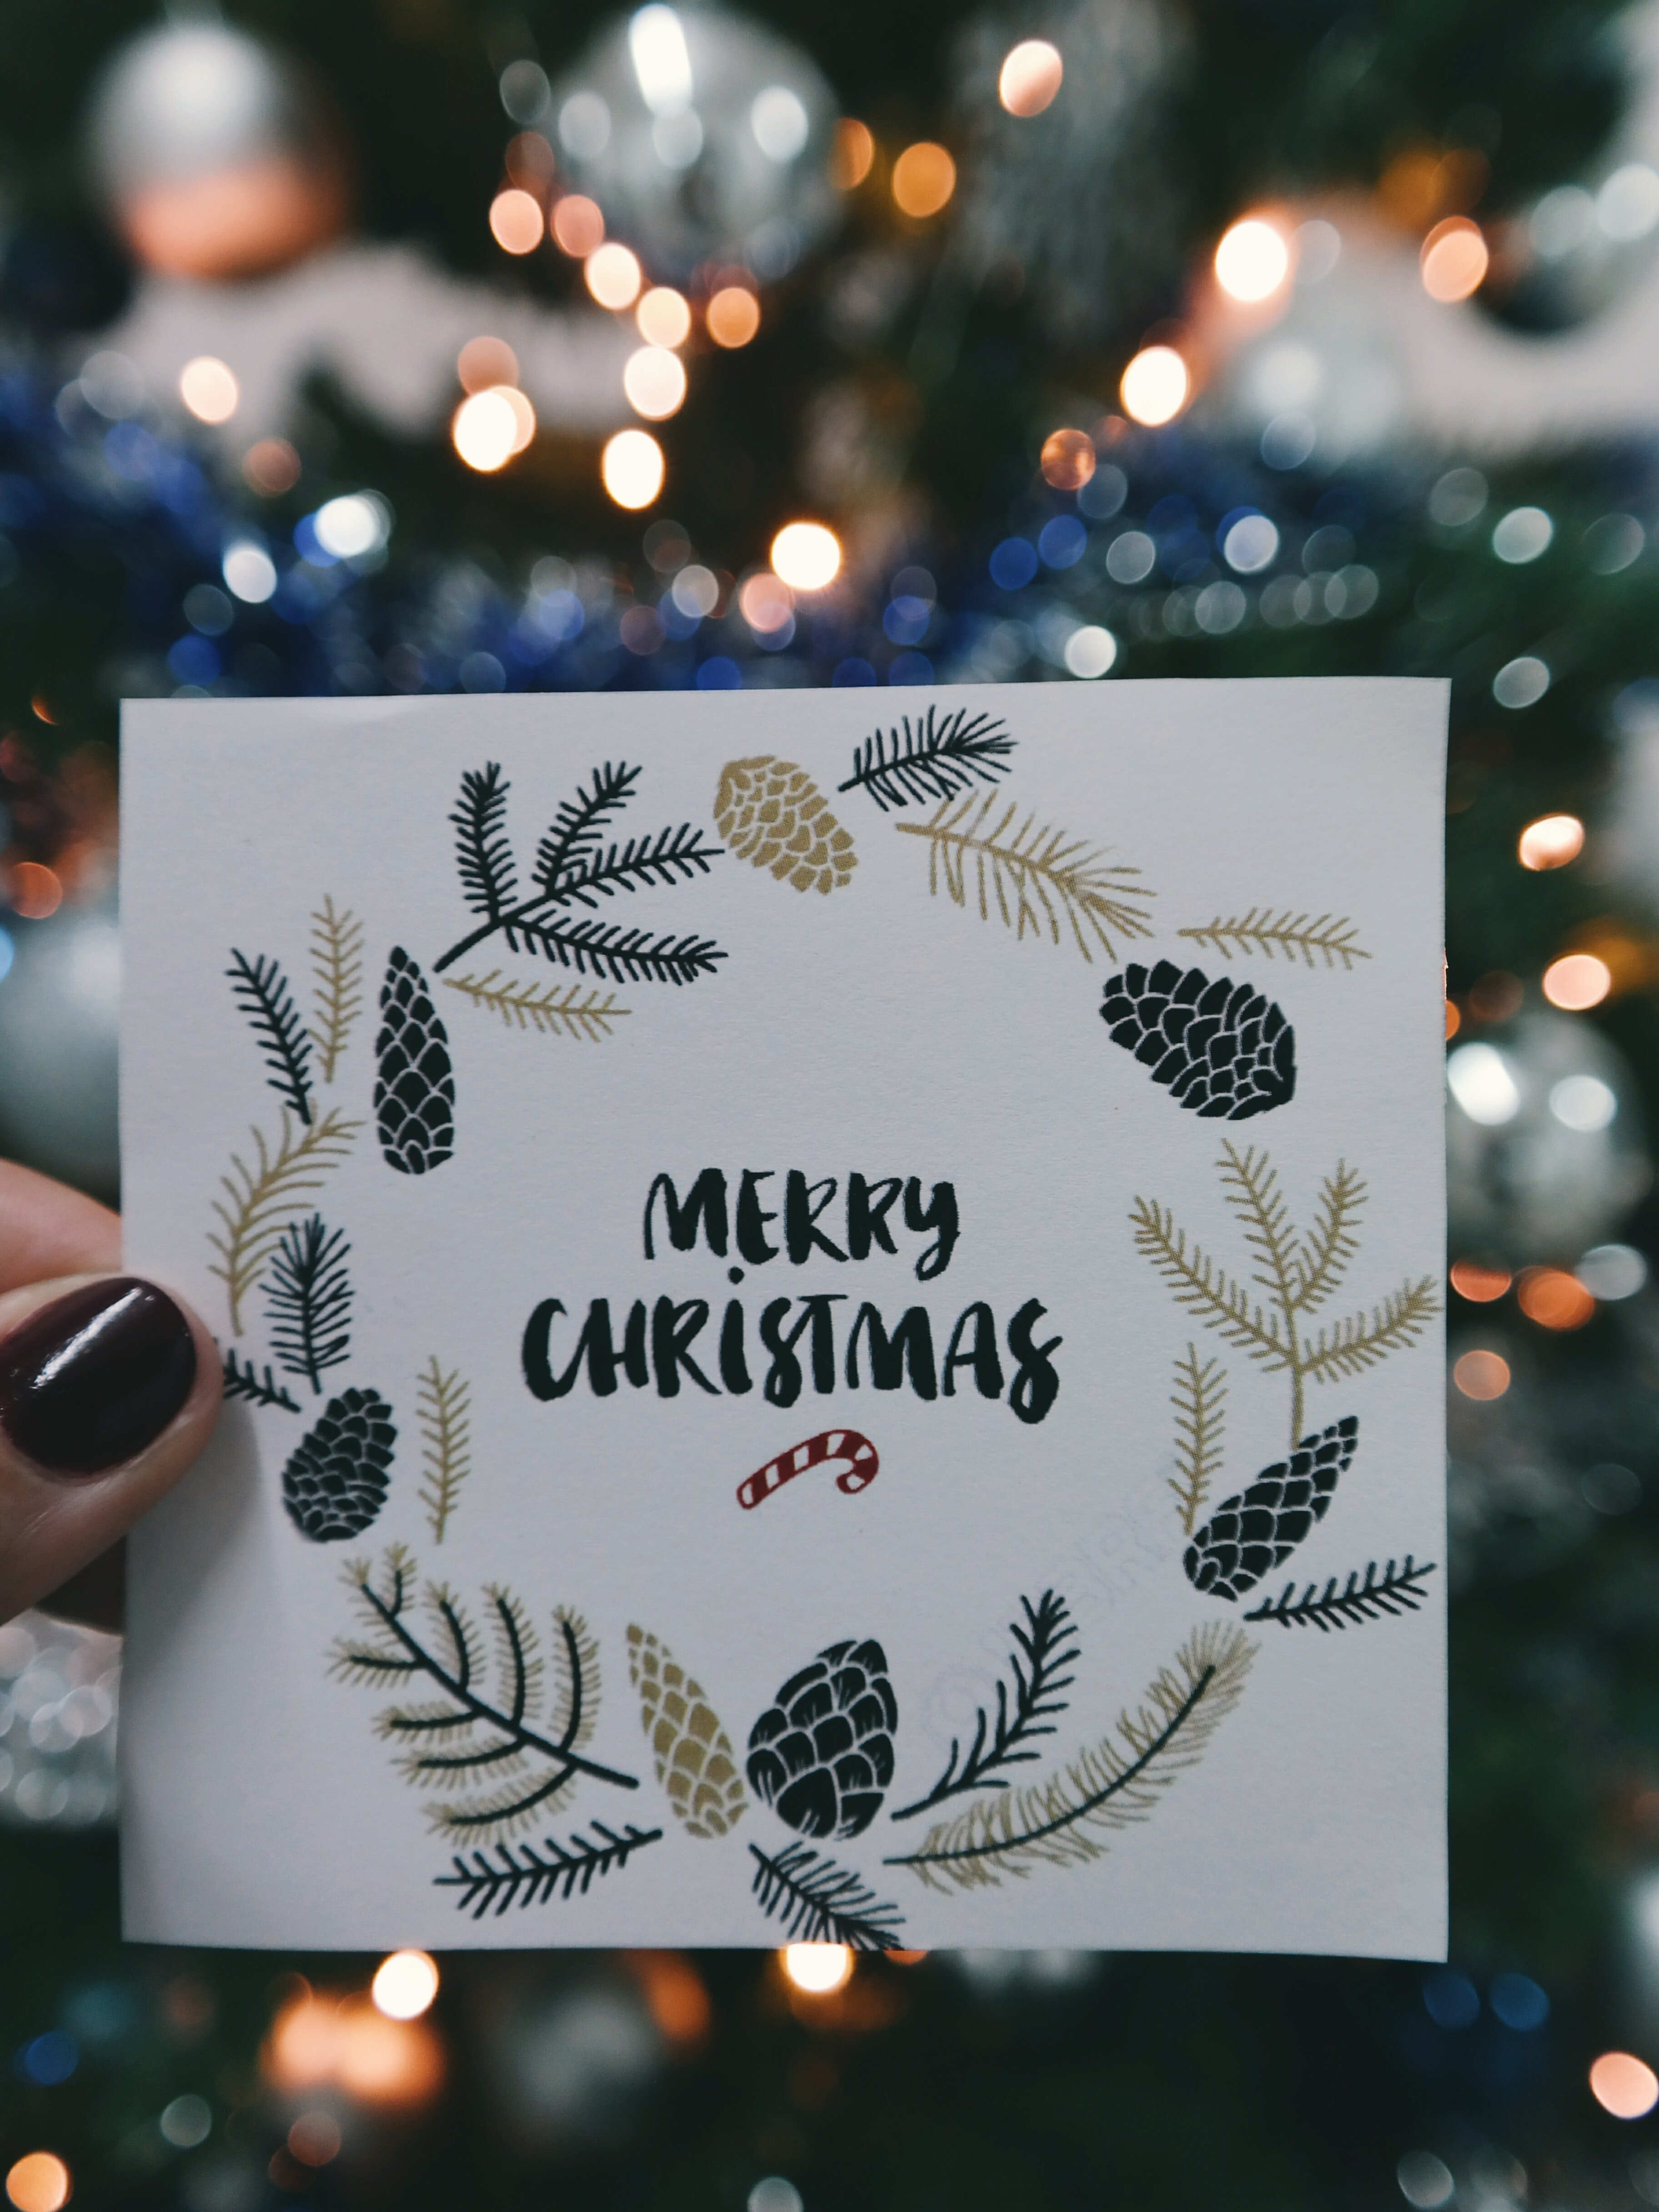 Christmas card in front of tree | Photo: Pexels.com